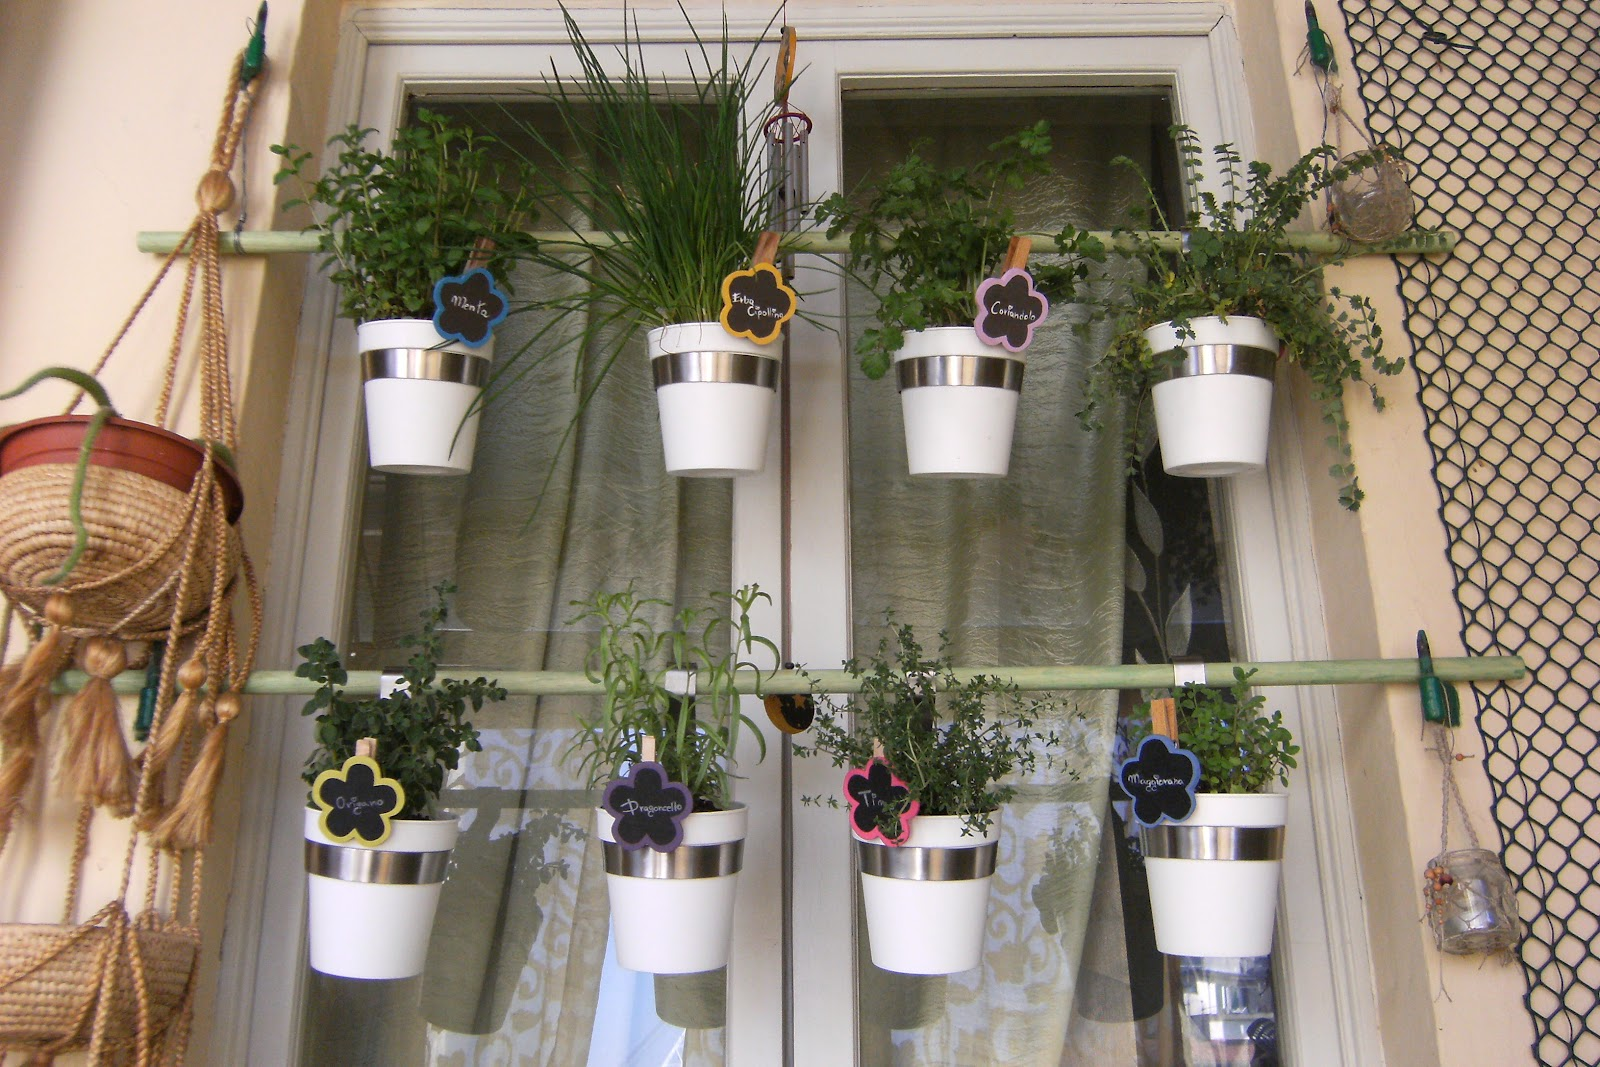 Ikea giardino verticale: indoor vertical vegetable garden ...